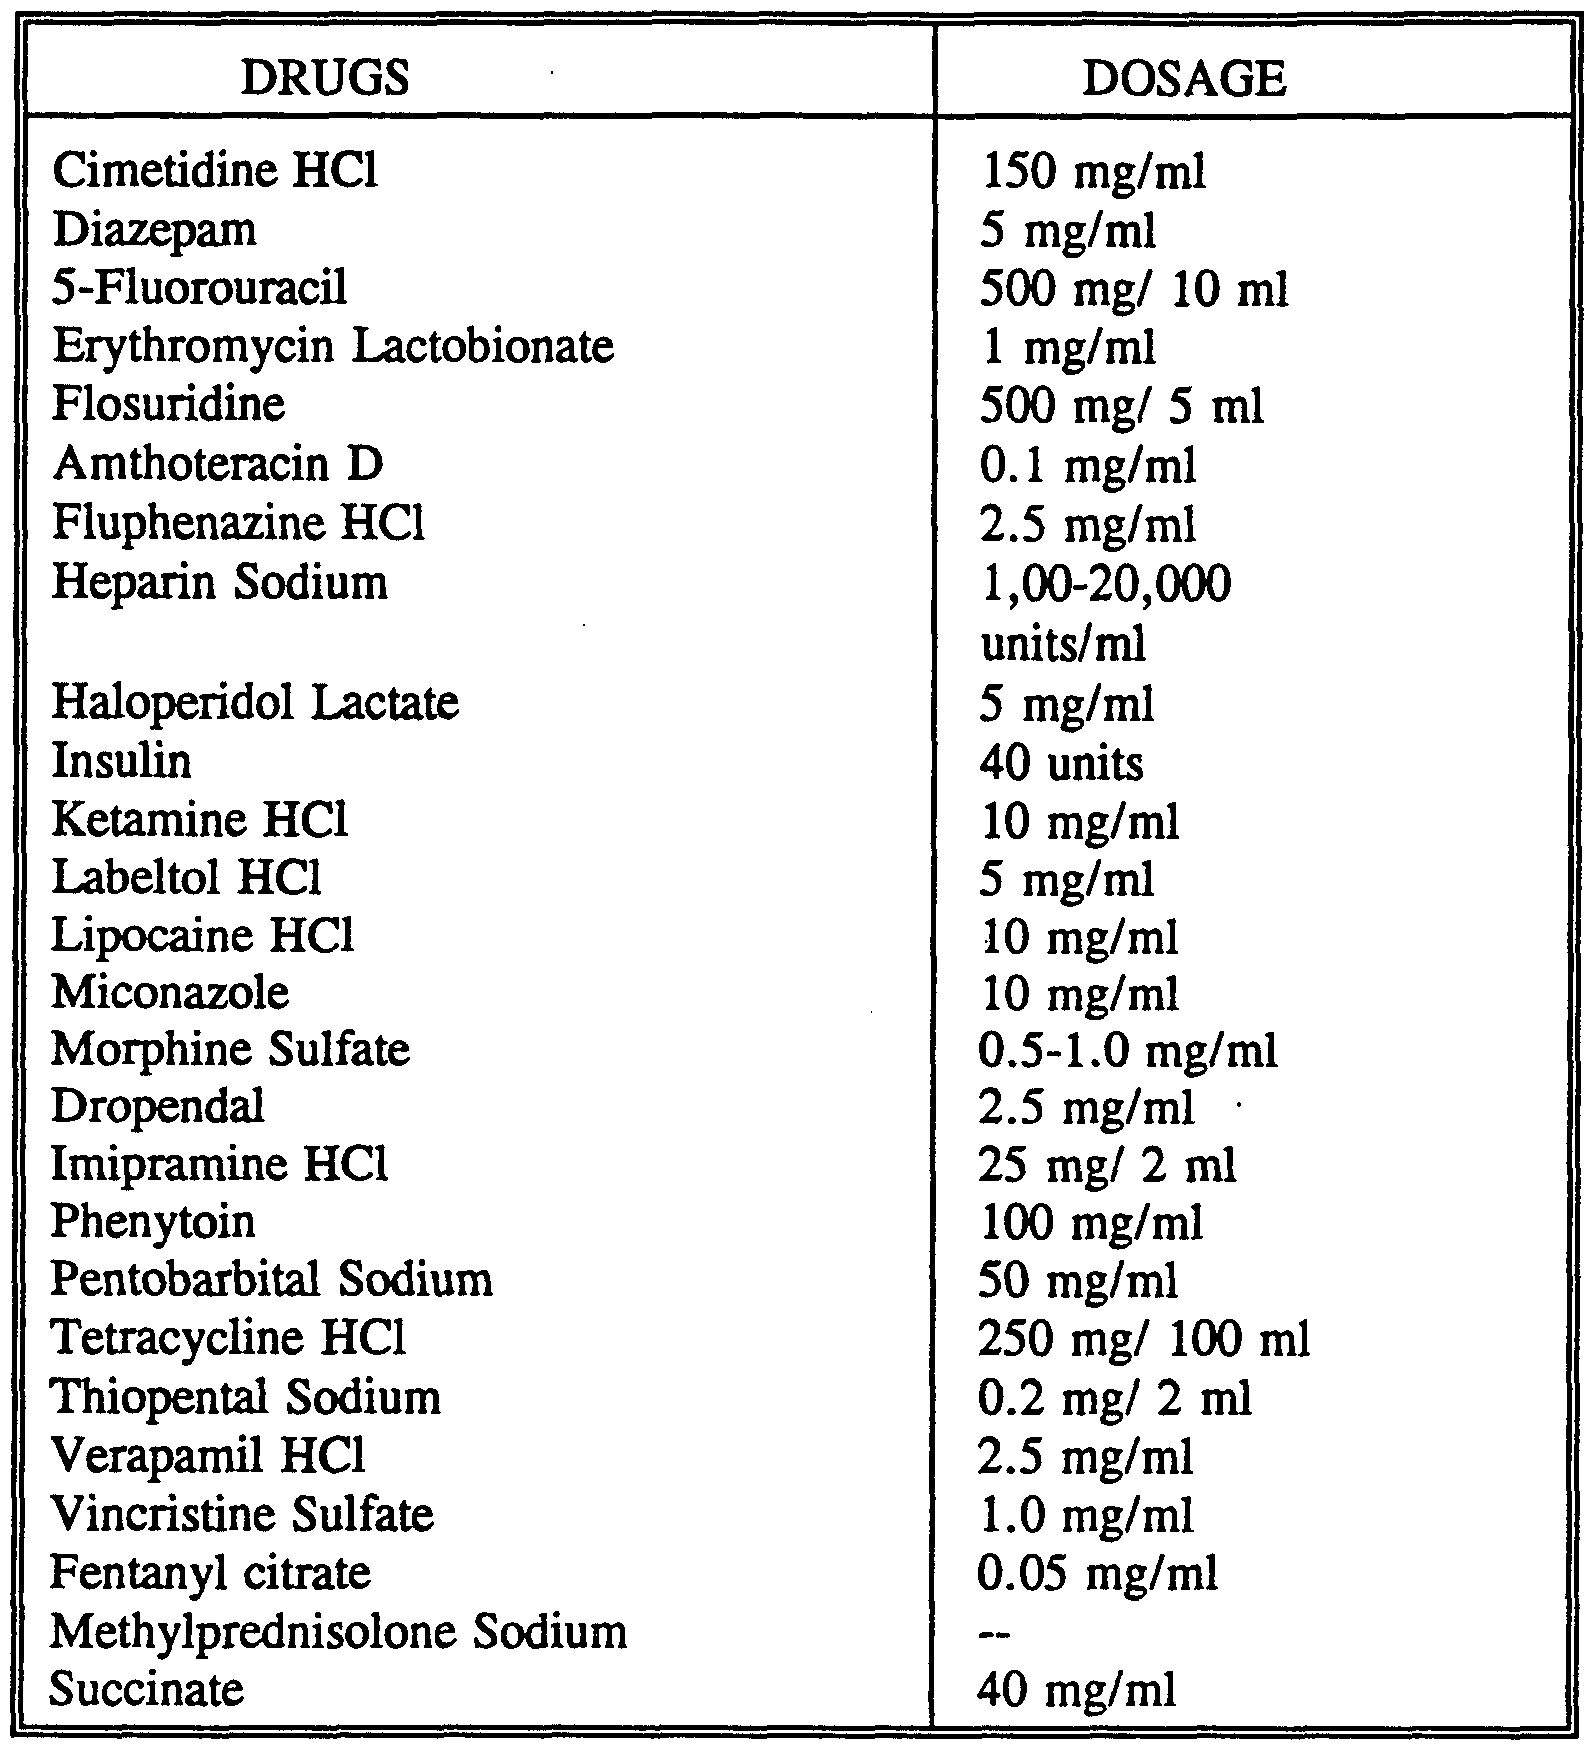 NEW EXAMPLES OF PROTEIN BASED DRUGS   example